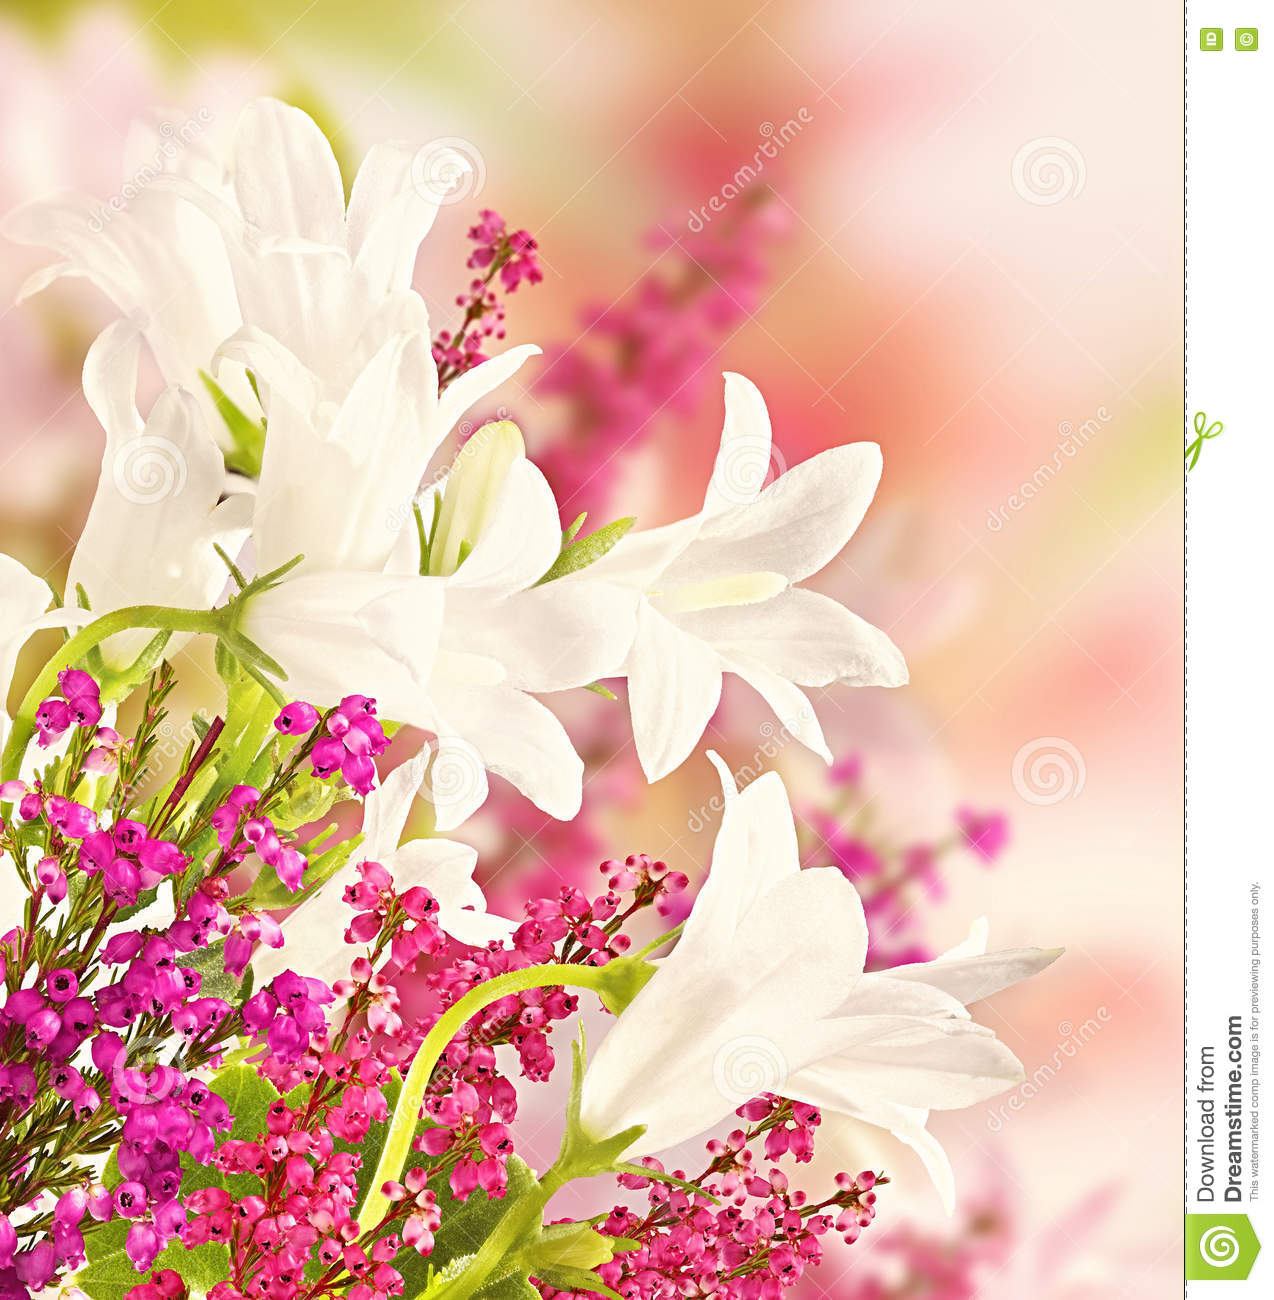 Background for design with flowers beautiful bouquet of flowers background for design with flowers beautiful bouquet of flowers izmirmasajfo